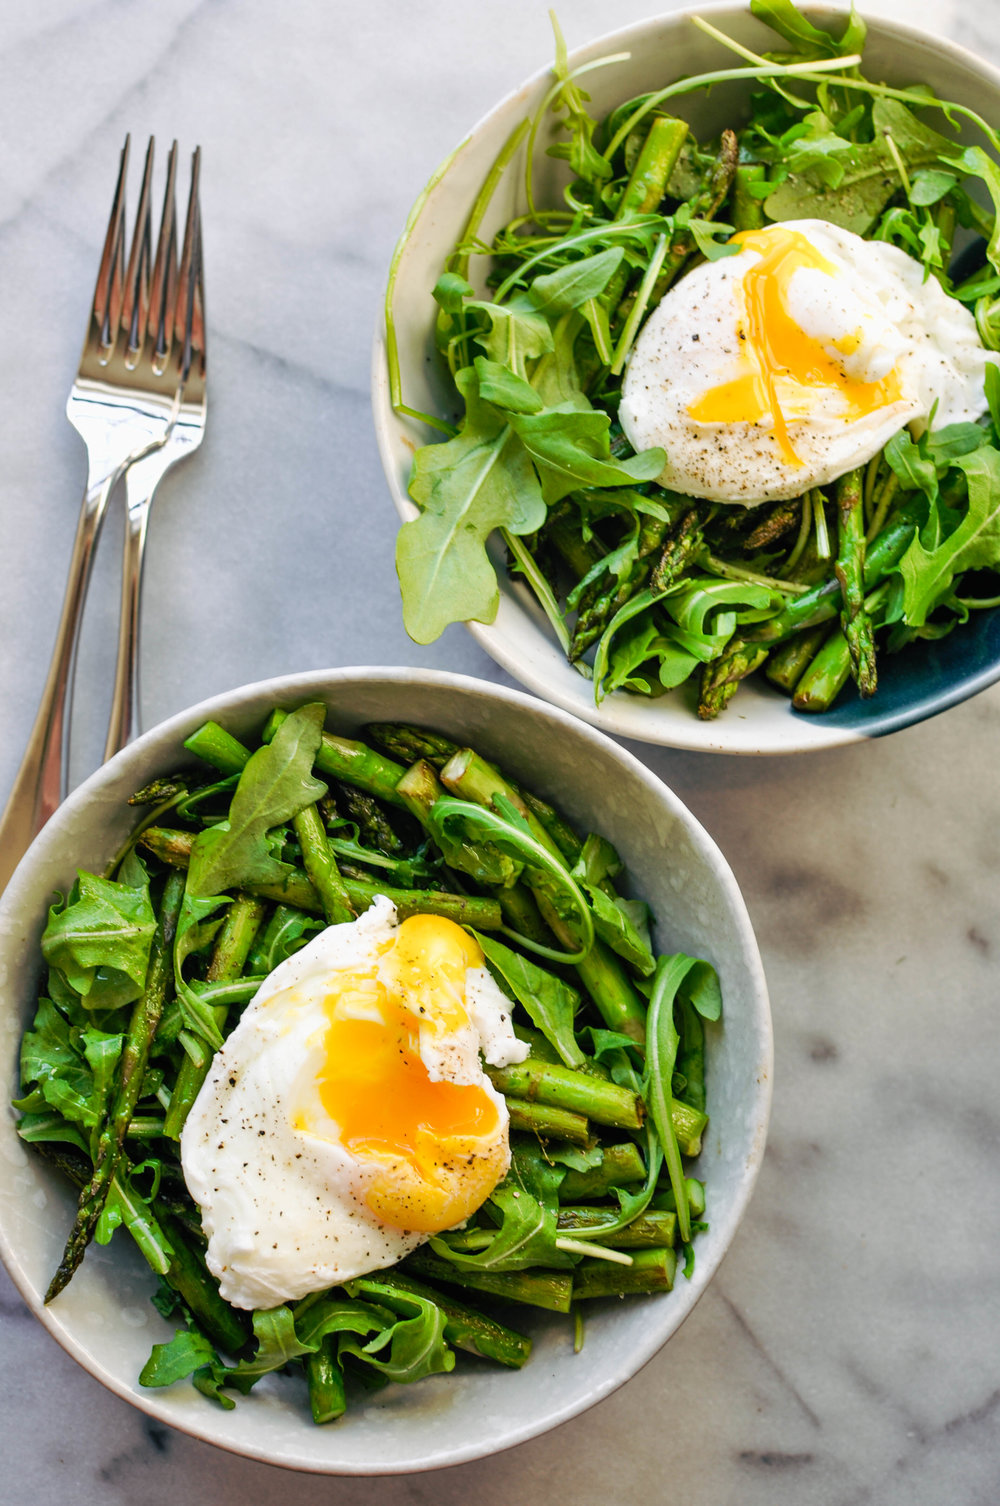 A healthy breakfast of arugula, asparagus, and a poached egg. A perfect, vegetarian meal. | This Healthy Table